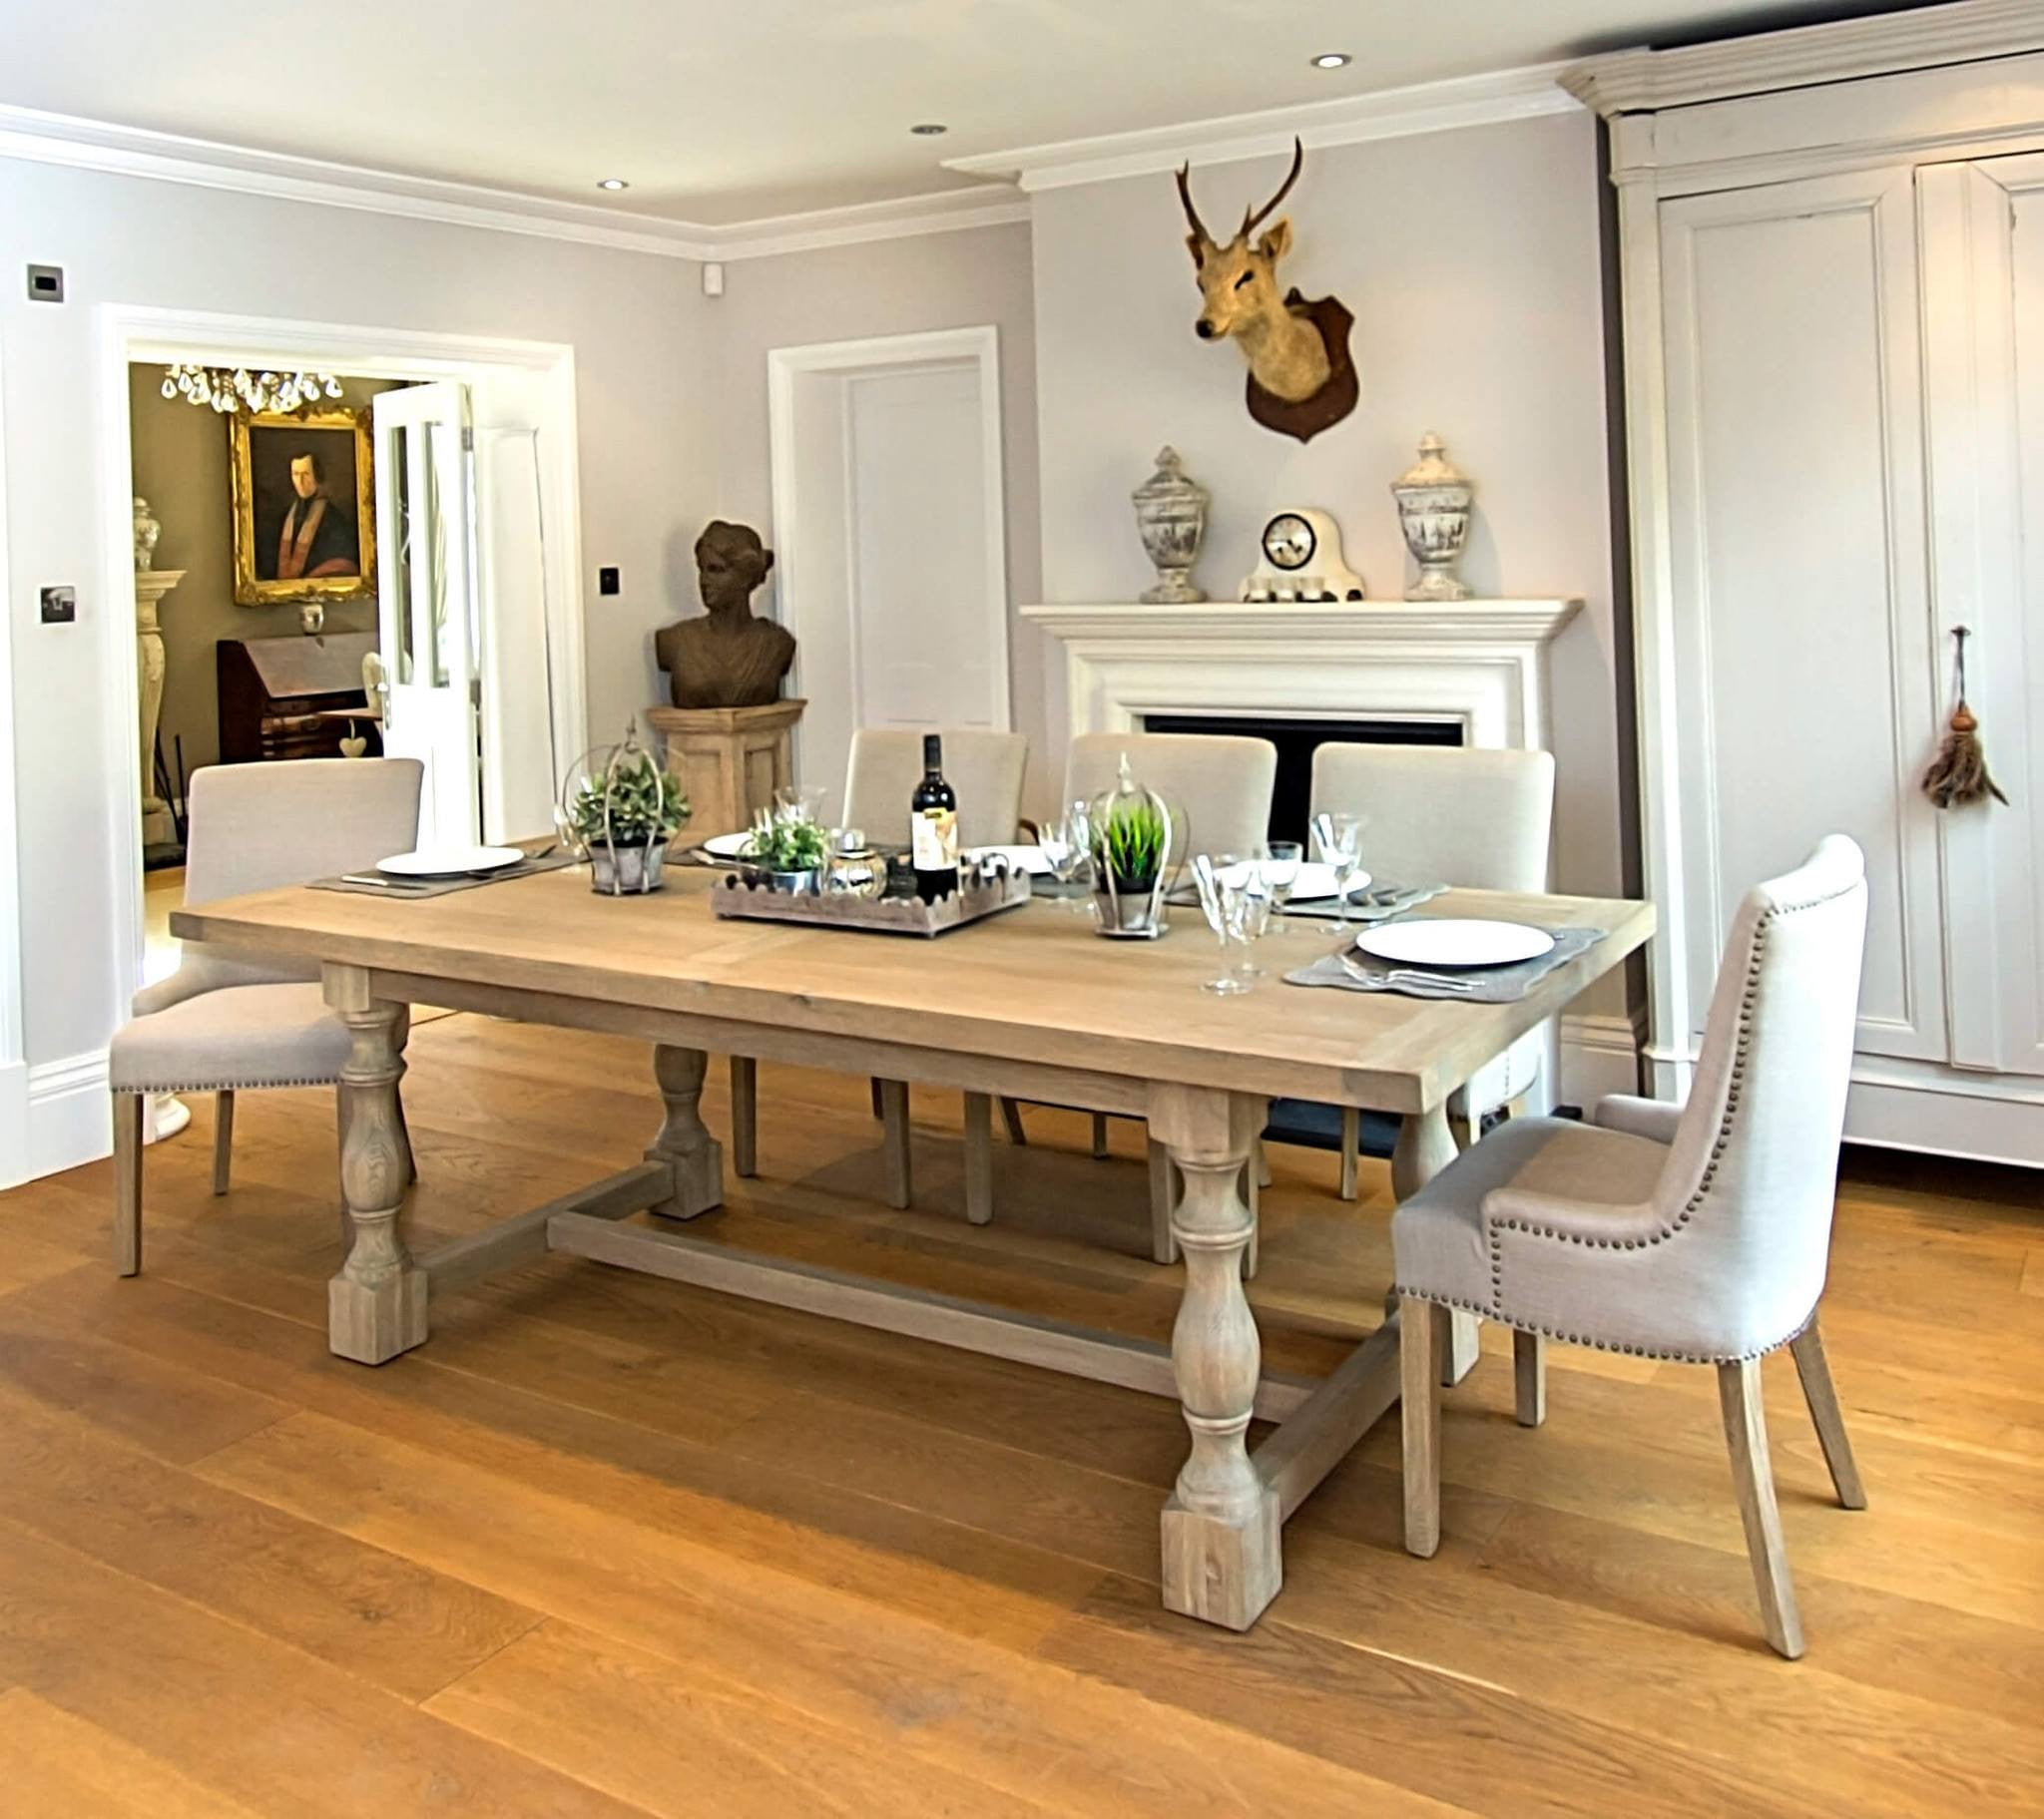 Large Refectory Style Dining Table Montague Weathered Oak Table